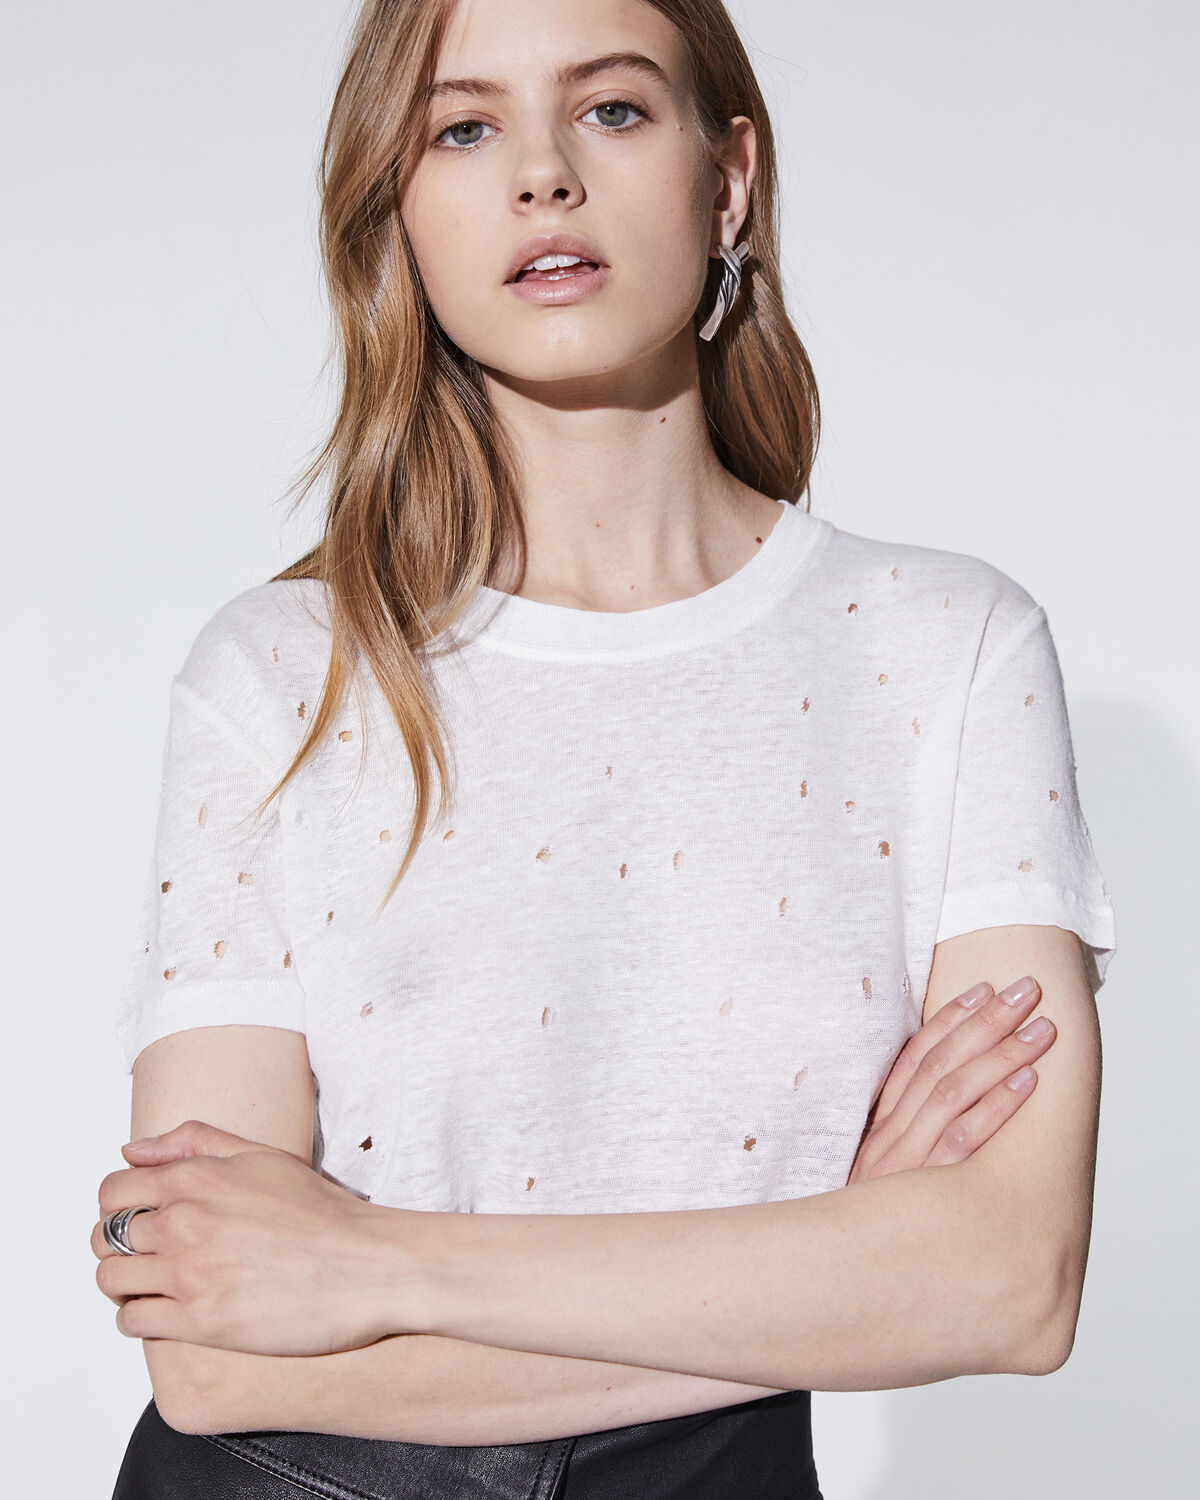 Photo of IRO Paris Clay T-Shirt Ecru - This Slightly Transparent And Destroying Linen T-shirt Is A Basic Part Of The Iro Cloakroom, Easy To Wear According To The Seasons. T-Shirts